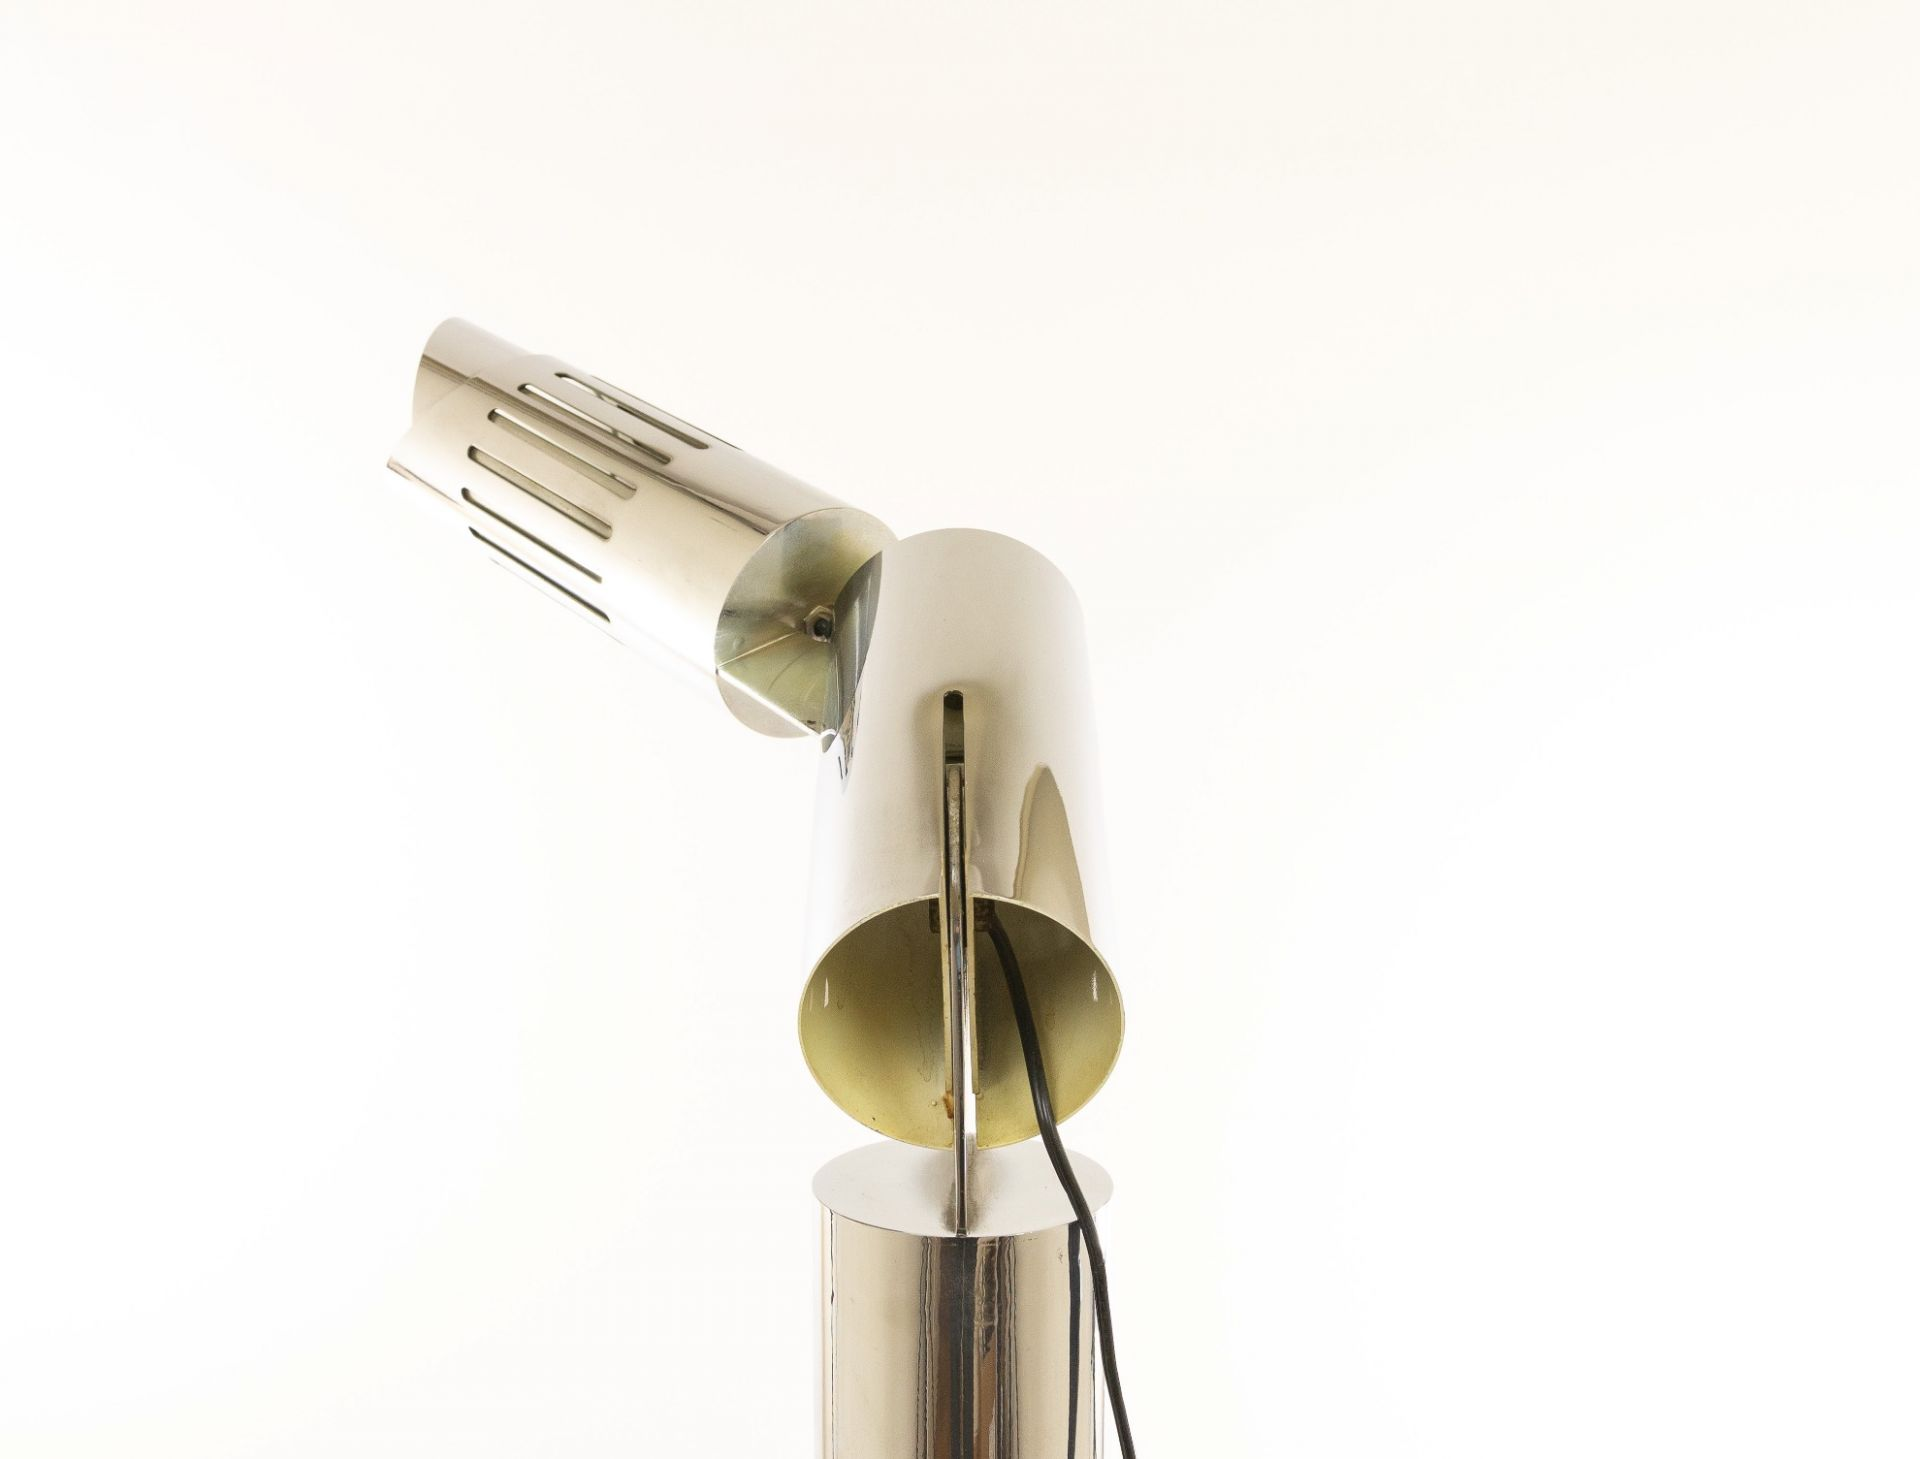 Chrome Floor Lamp, Model Cobra, by Gabriele D'Ali for Francesconi, 1970s